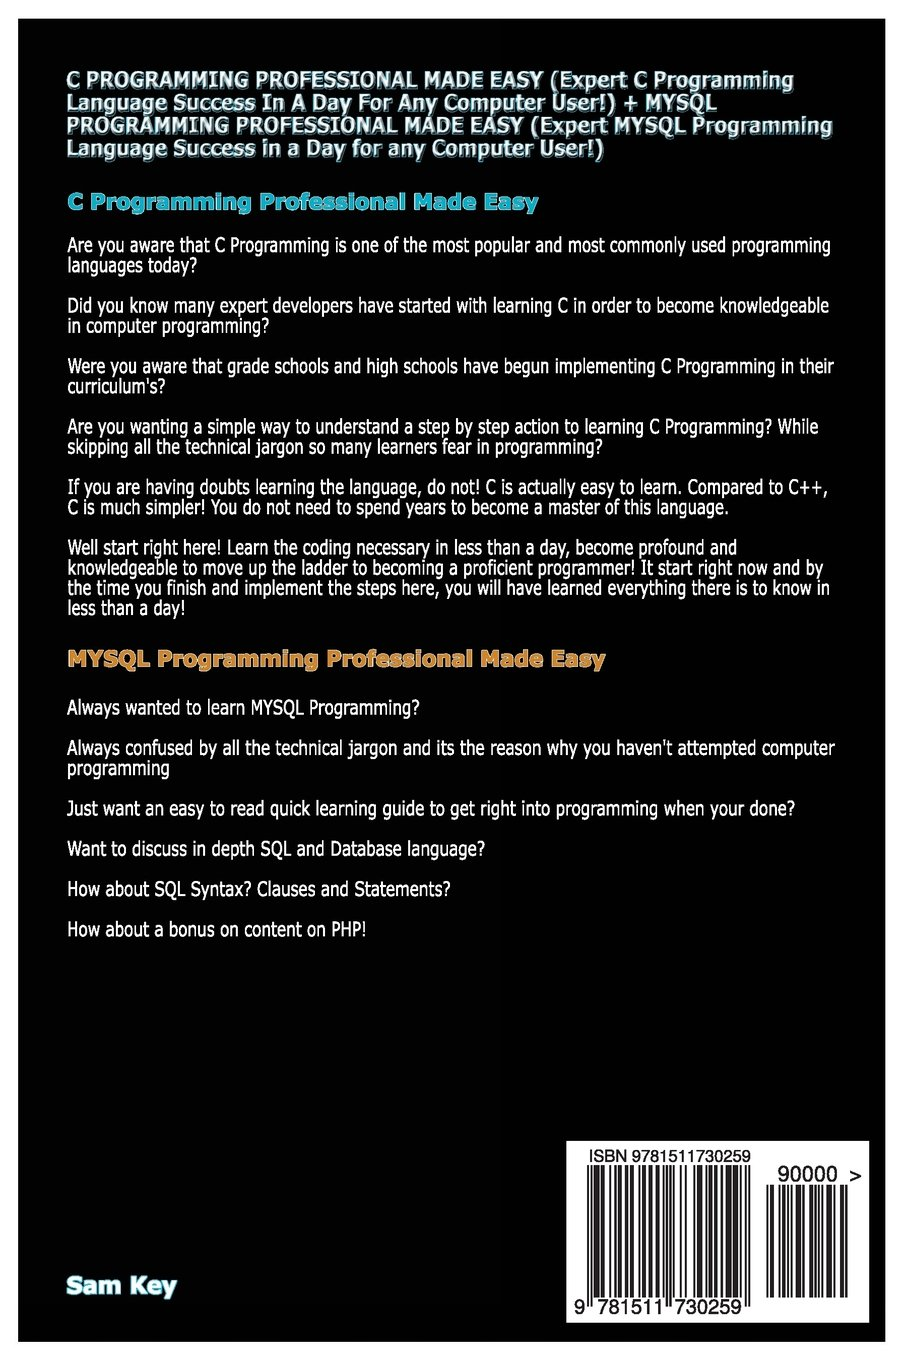 com c programming professional made easy mysql com c programming professional made easy mysql programming professional made easy volume 24 9781511730259 sam key books